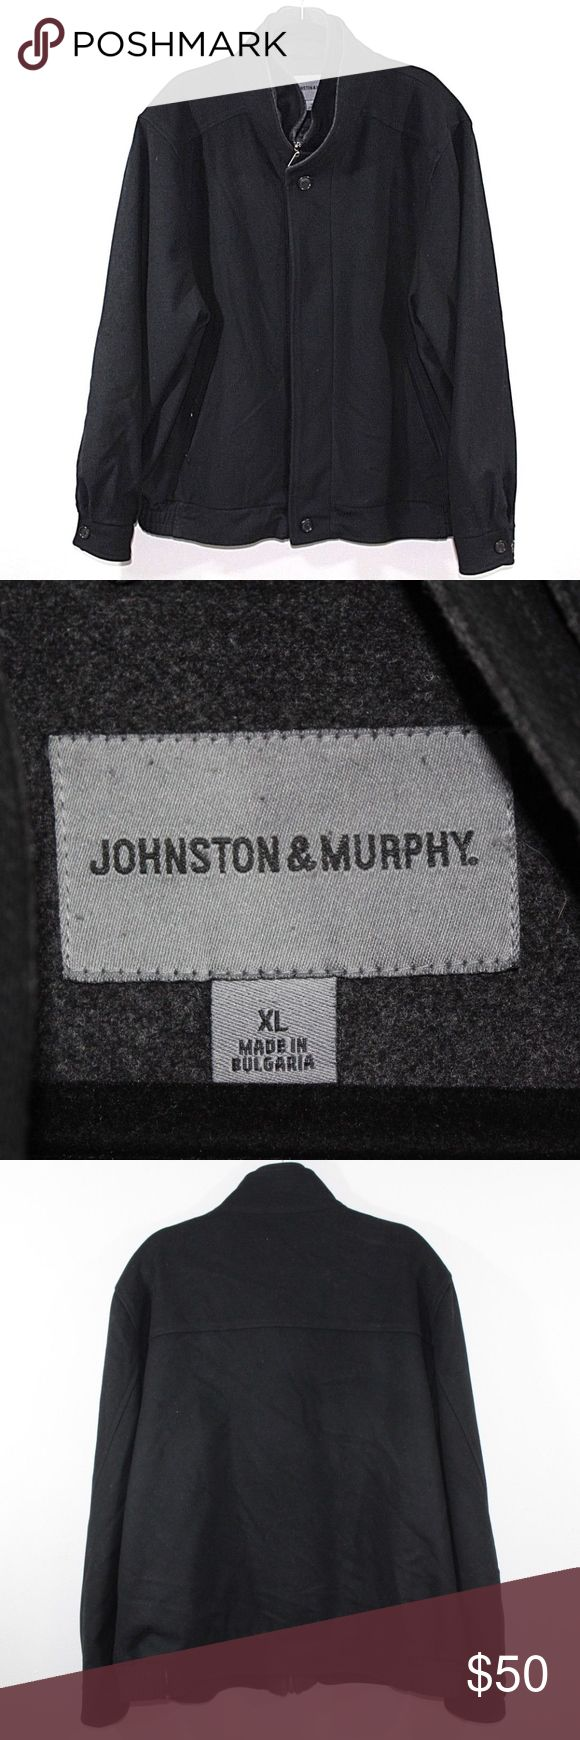 Johnston & Murphy Wool Cashmere Outdoor Jacket XL Johnston & Murphy Full Zip Windbreaker Jacket  Excellent jacket  Comes from a smoke-free household  Black  The size is XL and the measurements are 27 inches underarm to underarm and 29.5 inches shoulder to base.  80% Wool 20% Cashmere  Check out my other items for sale in my store!  G67 Johnston & Murphy Jackets & Coats Pea Coats